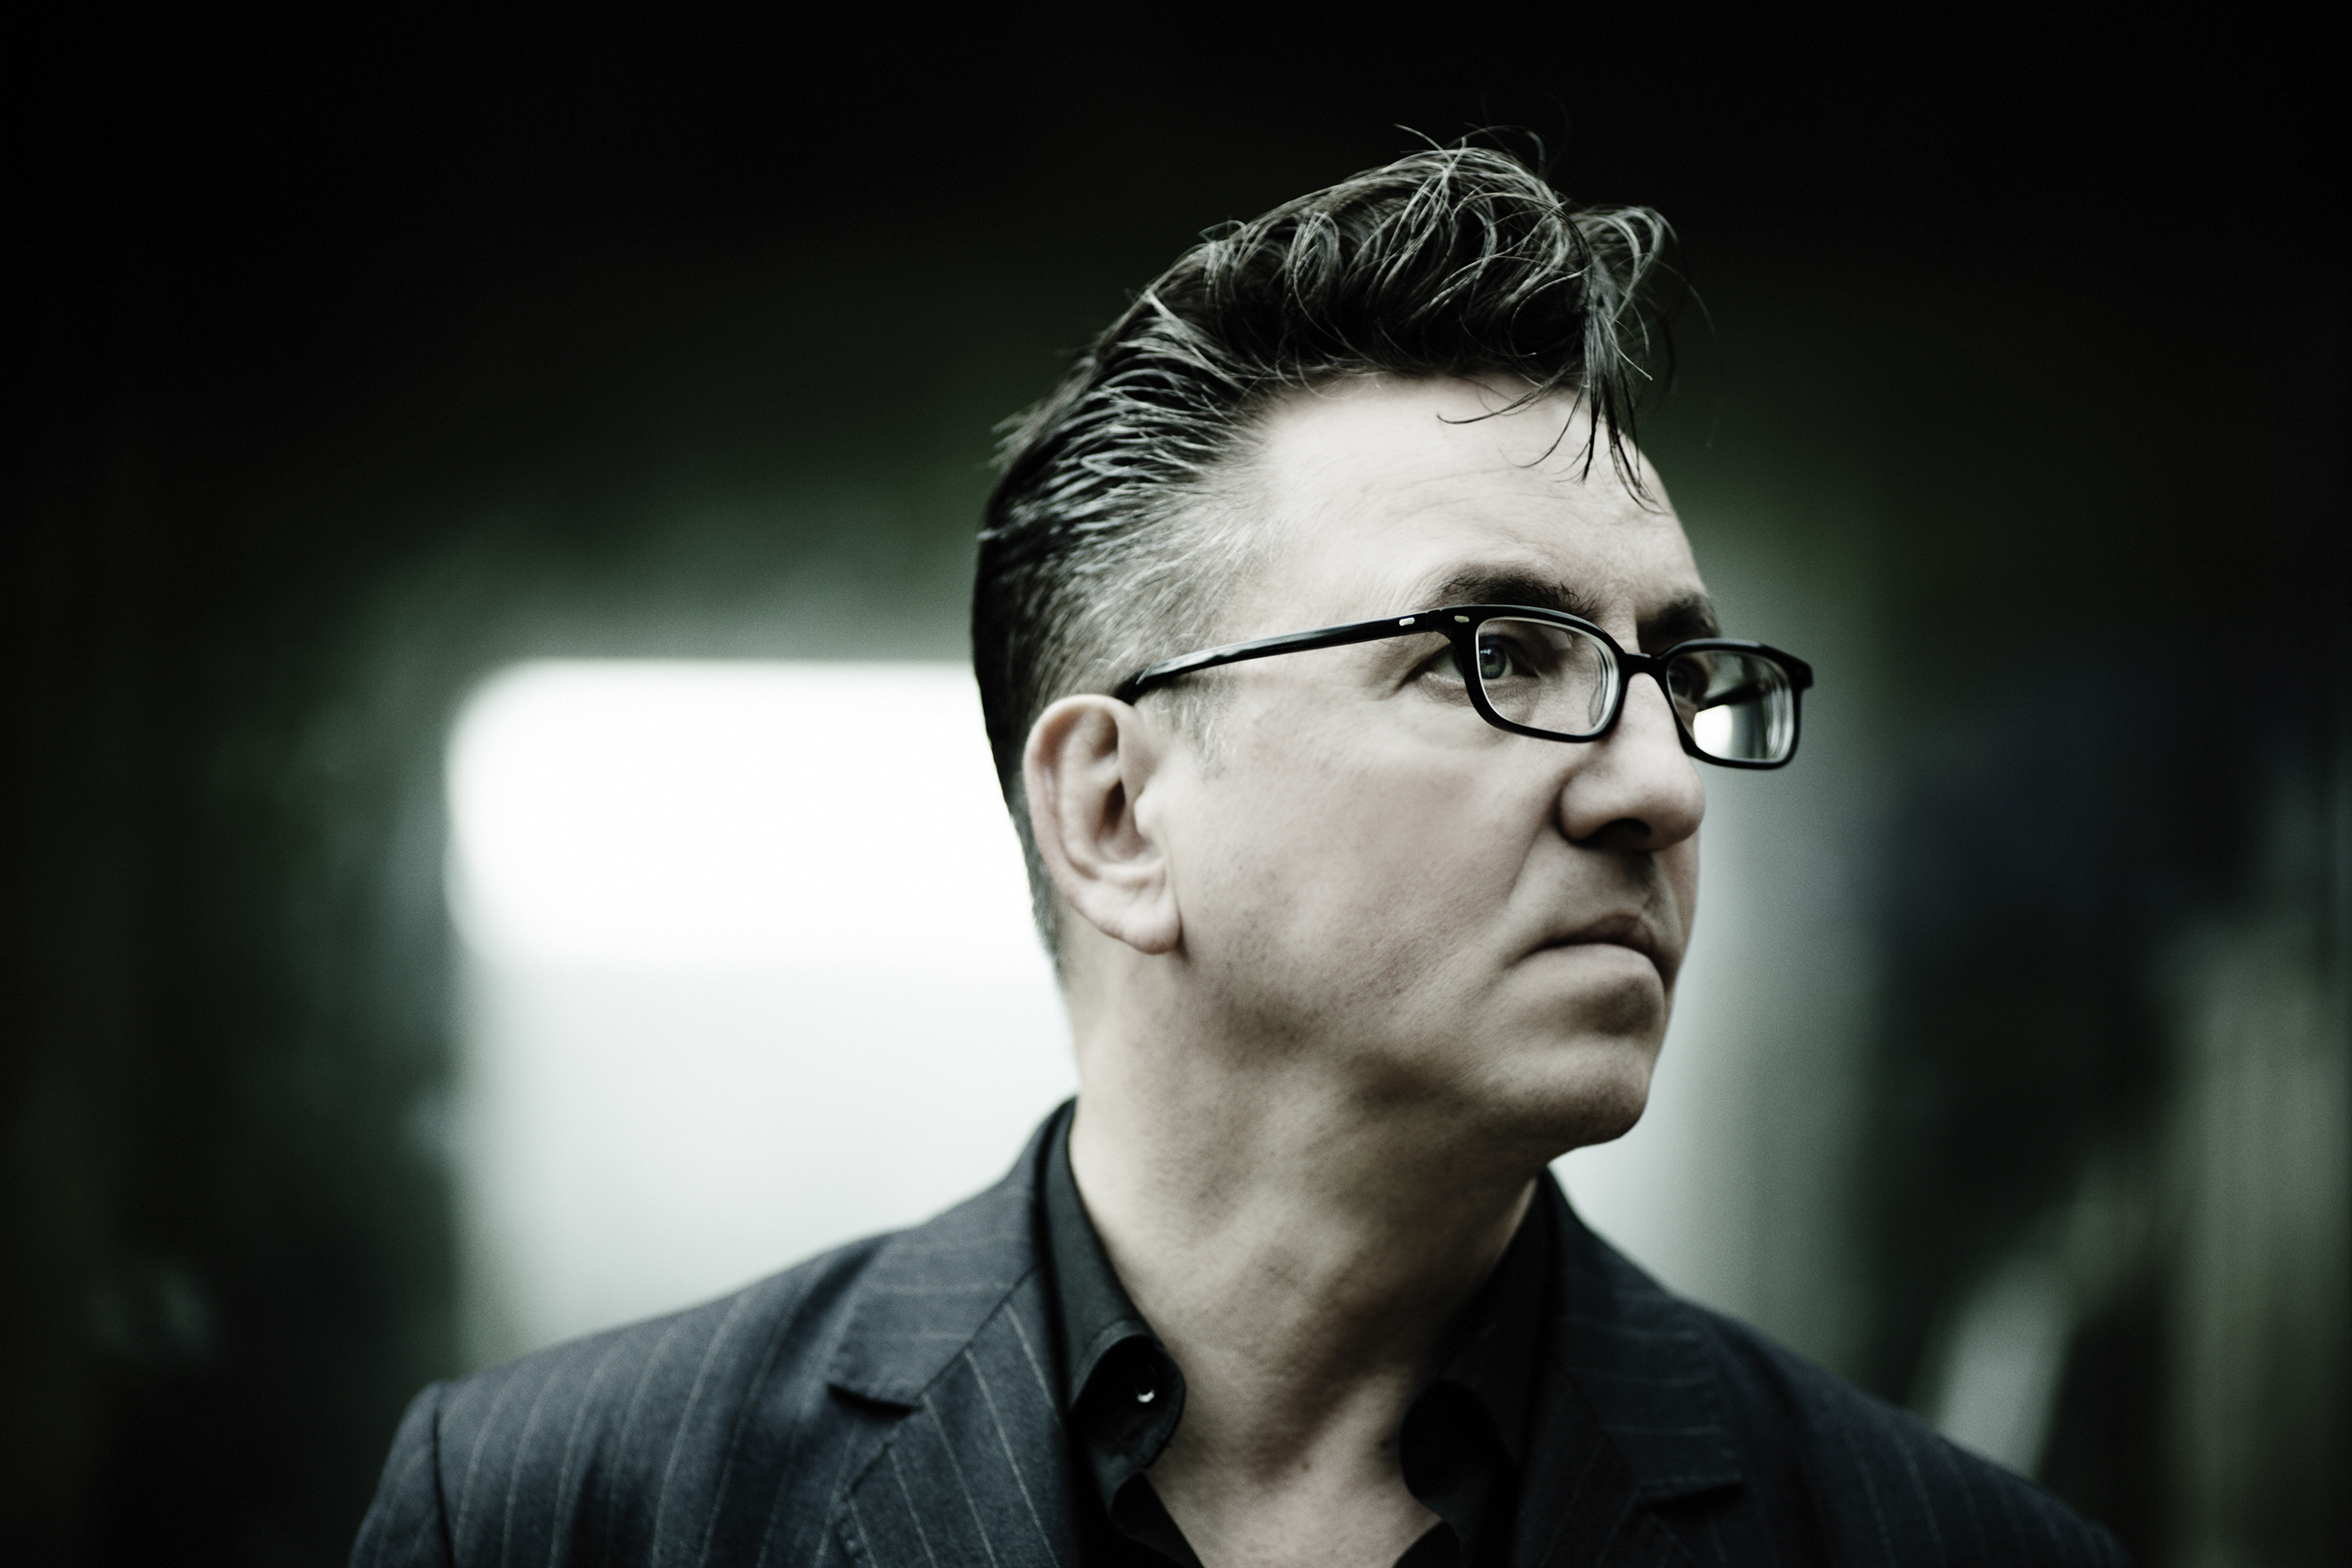 RichardHawley0615_Gullick_Y1A9939